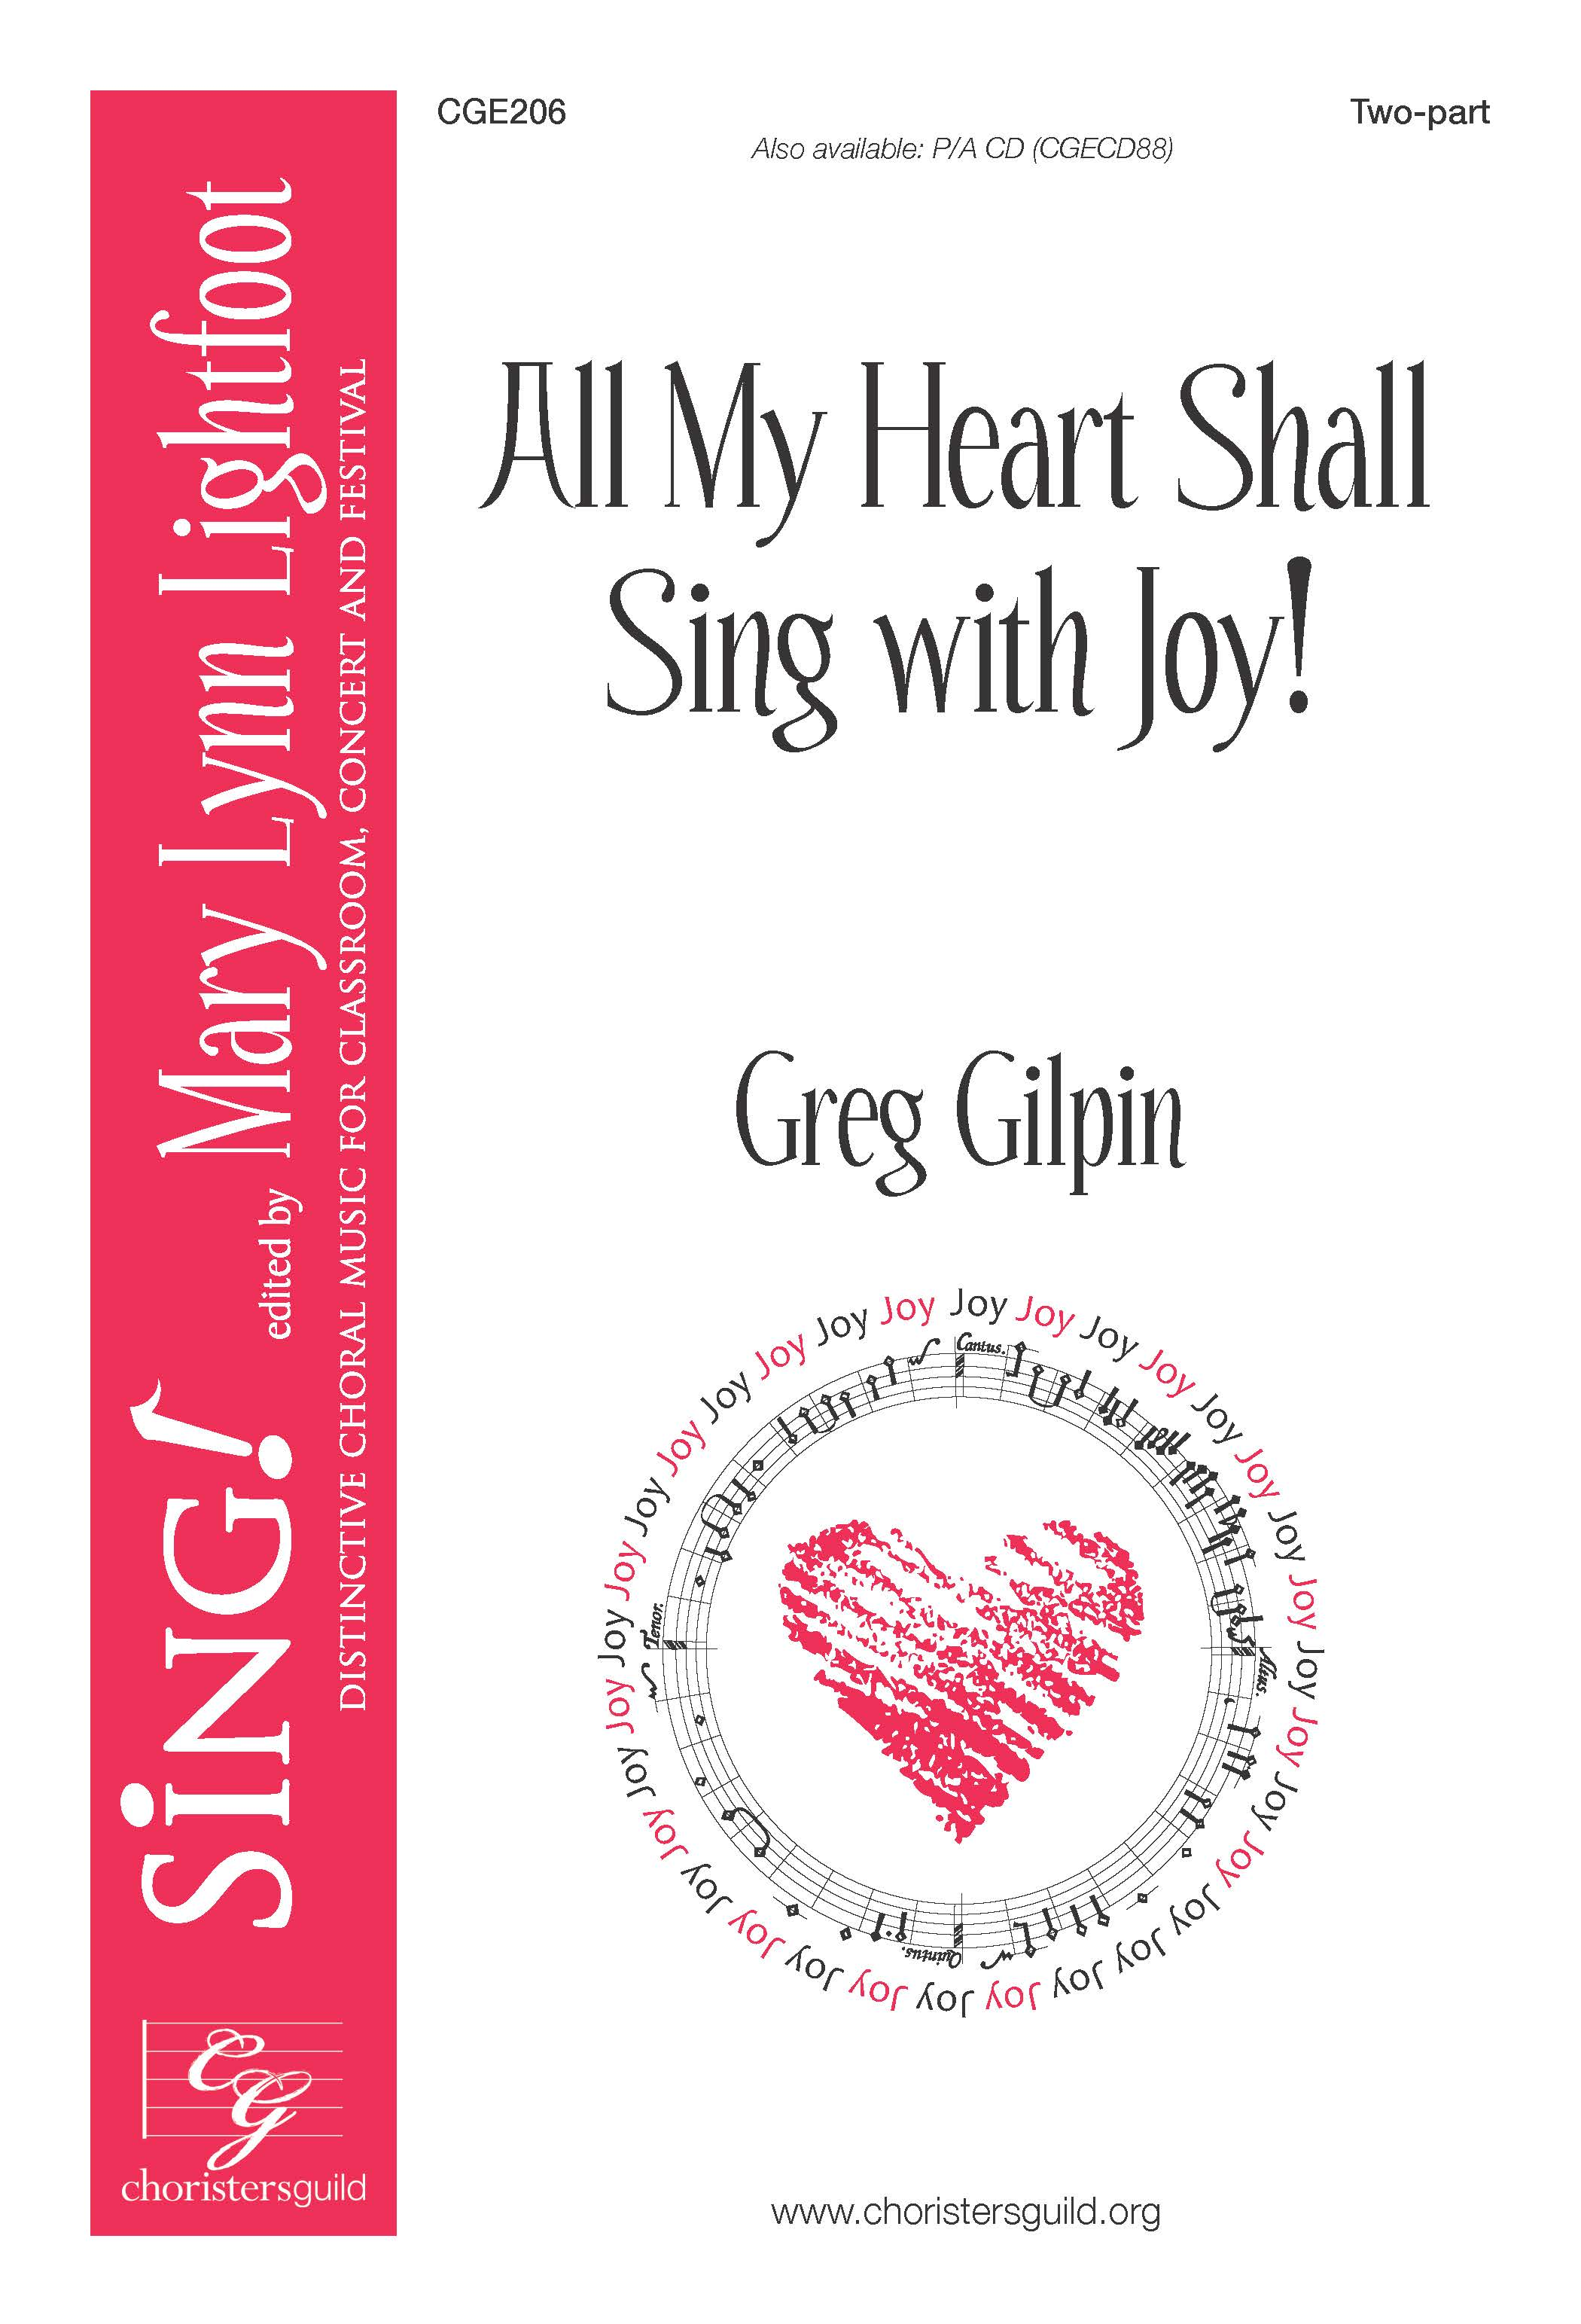 All My Heart Shall Sing with Joy! Two-part